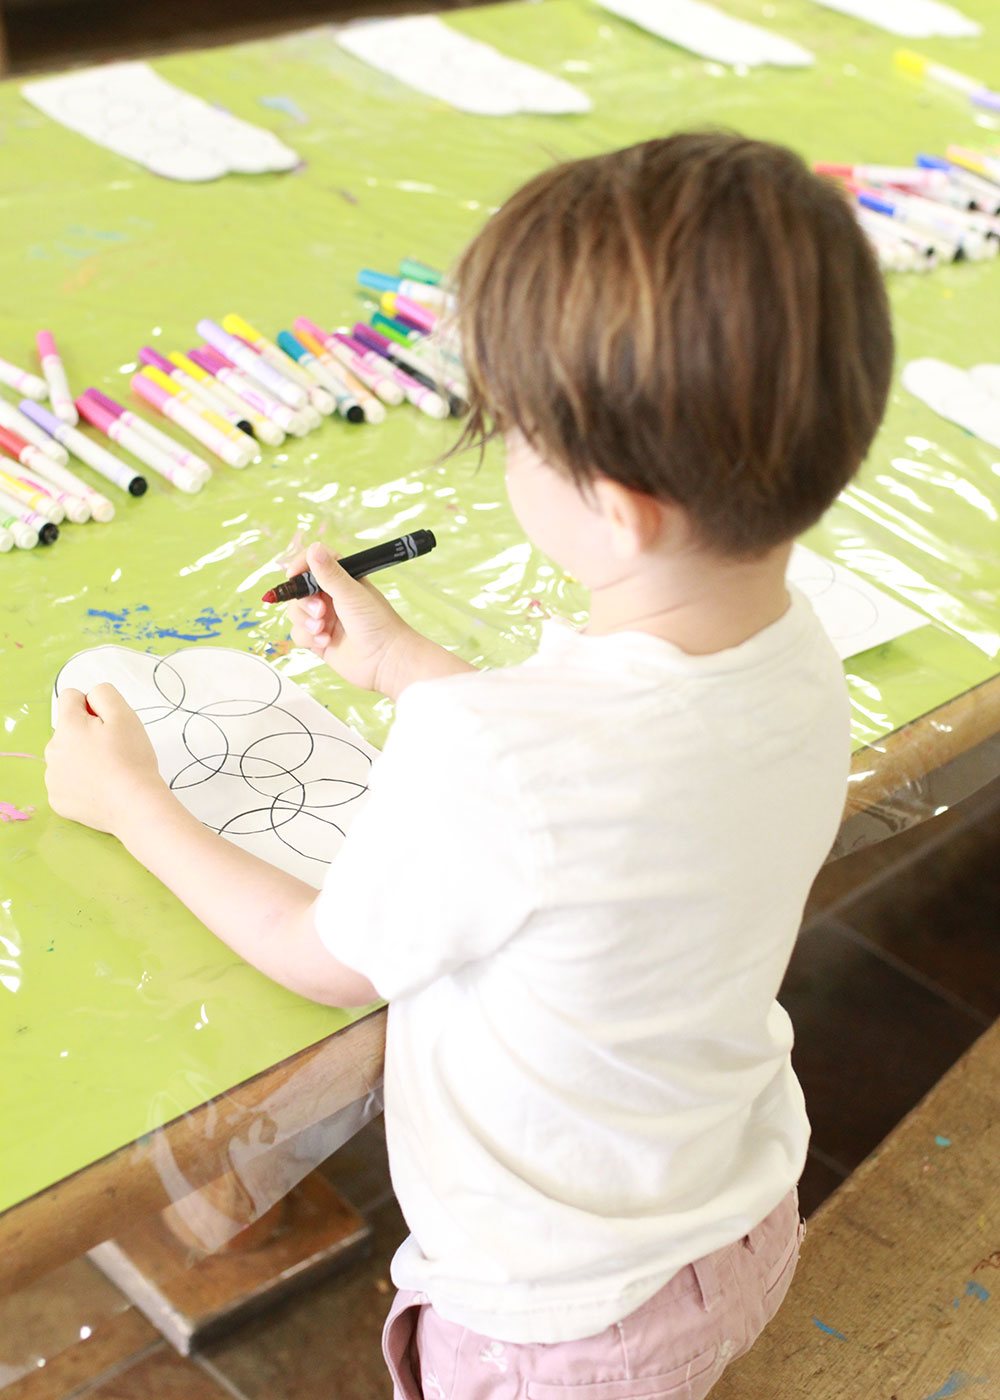 arts + crafts time at the coyote kids camp at the pointe hilton squaw peak resort | thelovedesignedlife.com